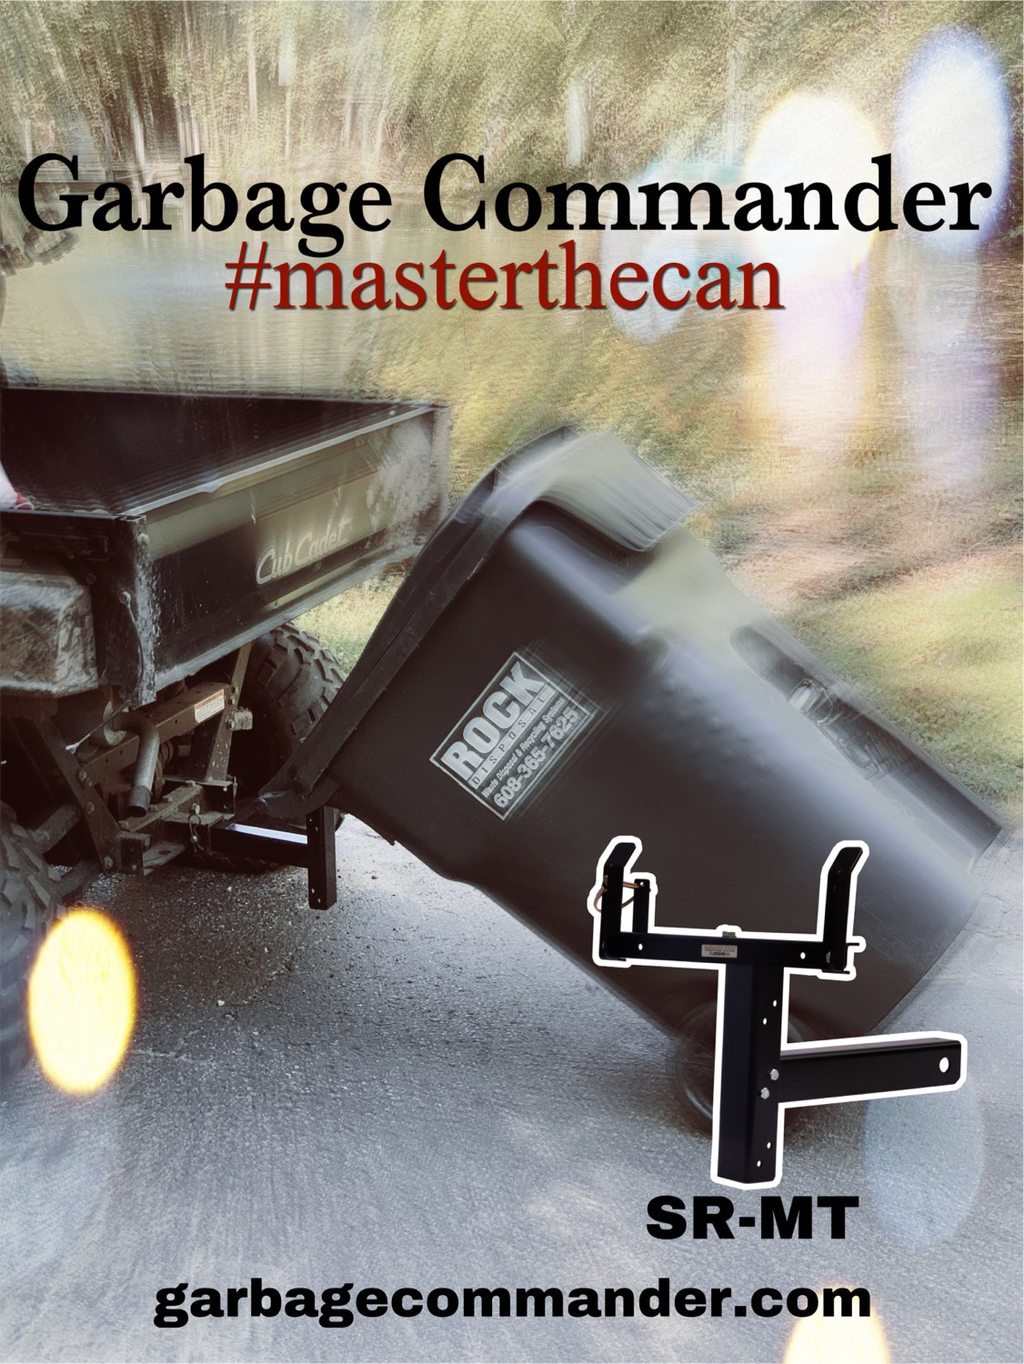 Rain Or Shine Garbage Commander Is Here For You